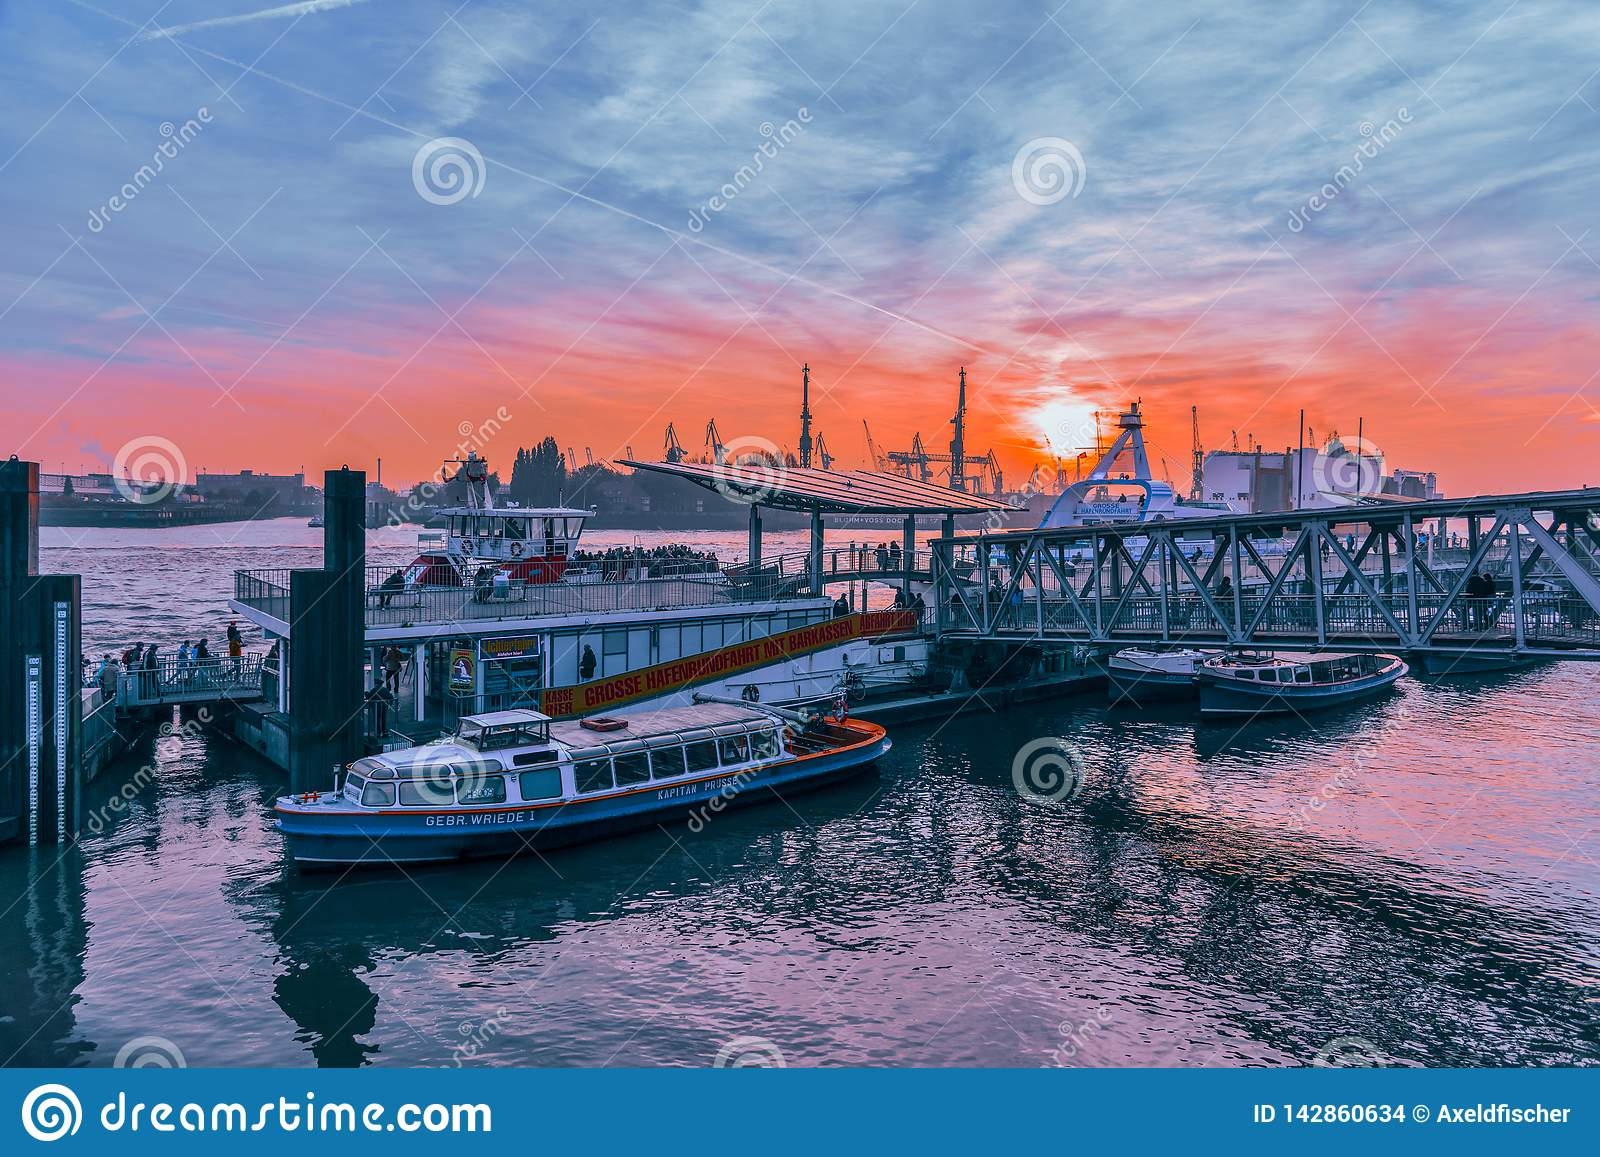 Hamburg, Germany - November 01, 2015: Tourists embark for the last harbor tour at the famous gangways of the harbor of